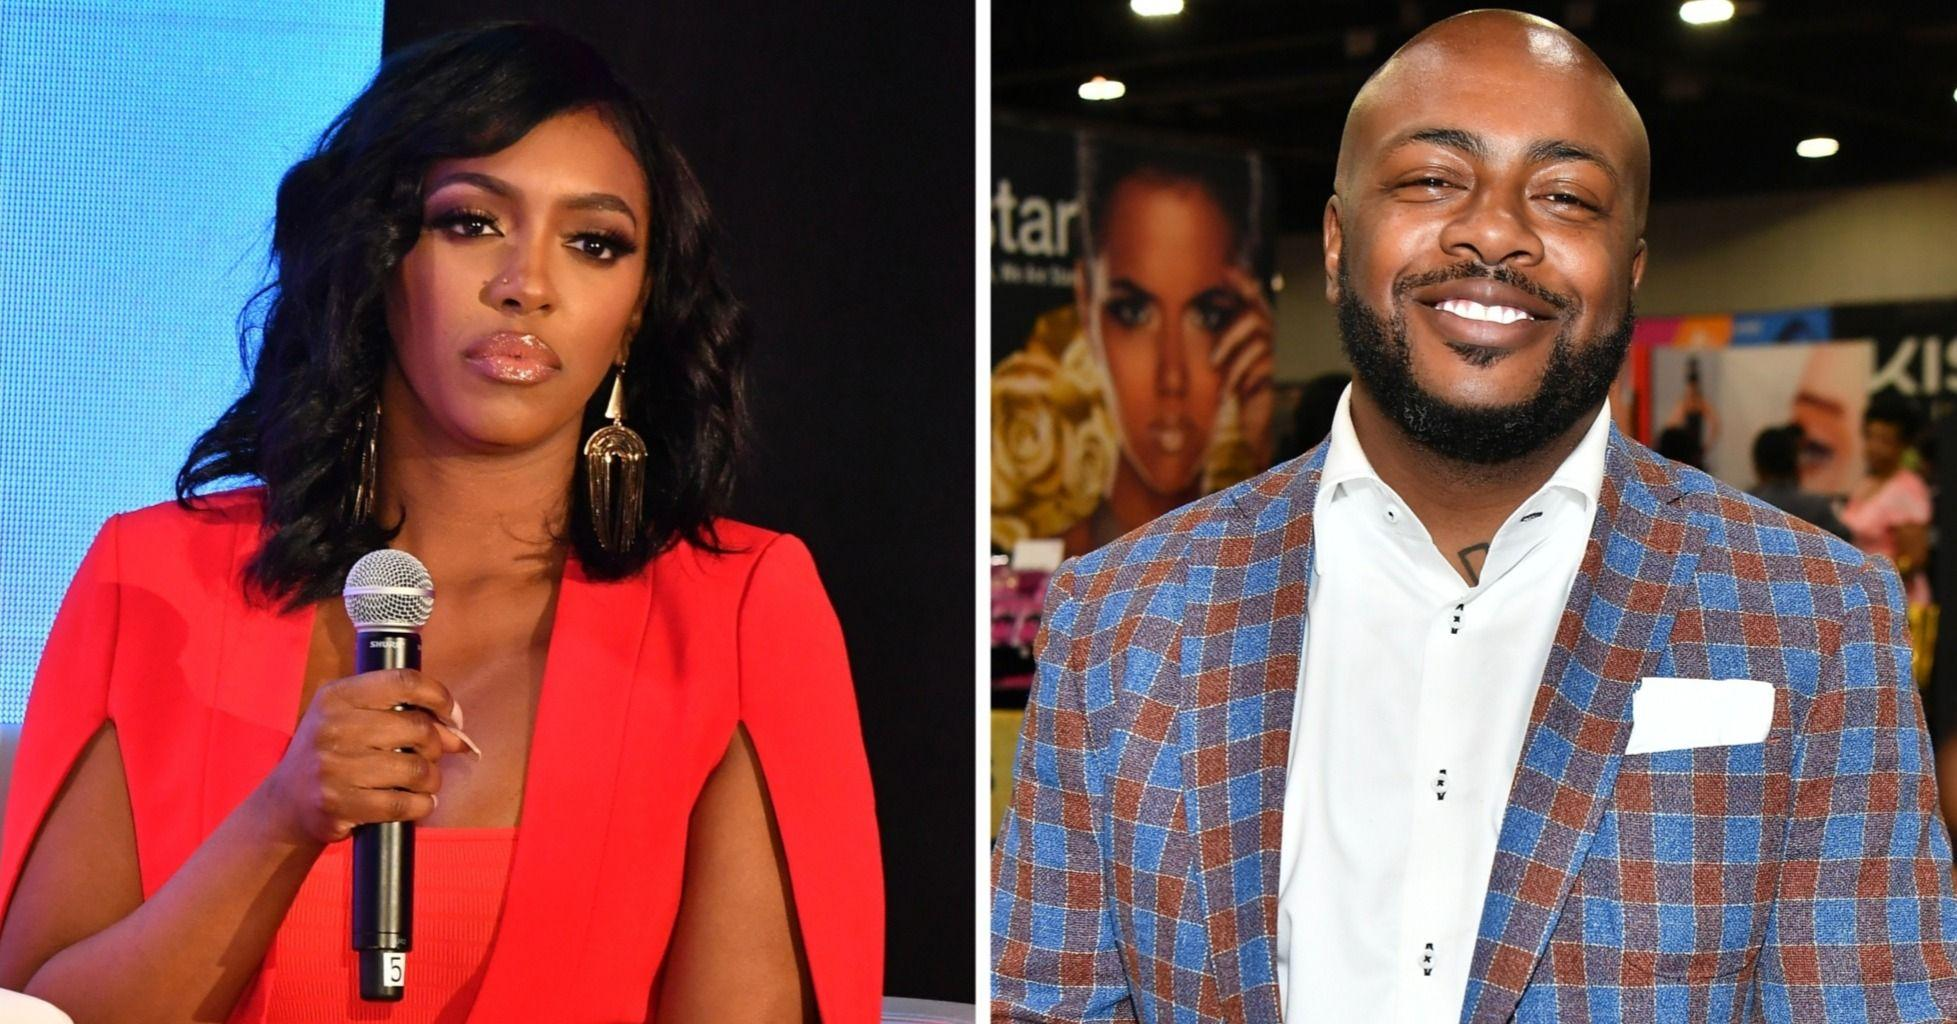 Porsha Williams Deletes Everything Dennis McKinley From Her Instagram And Unfollows Him - Fans Are Convinced They Split Again!